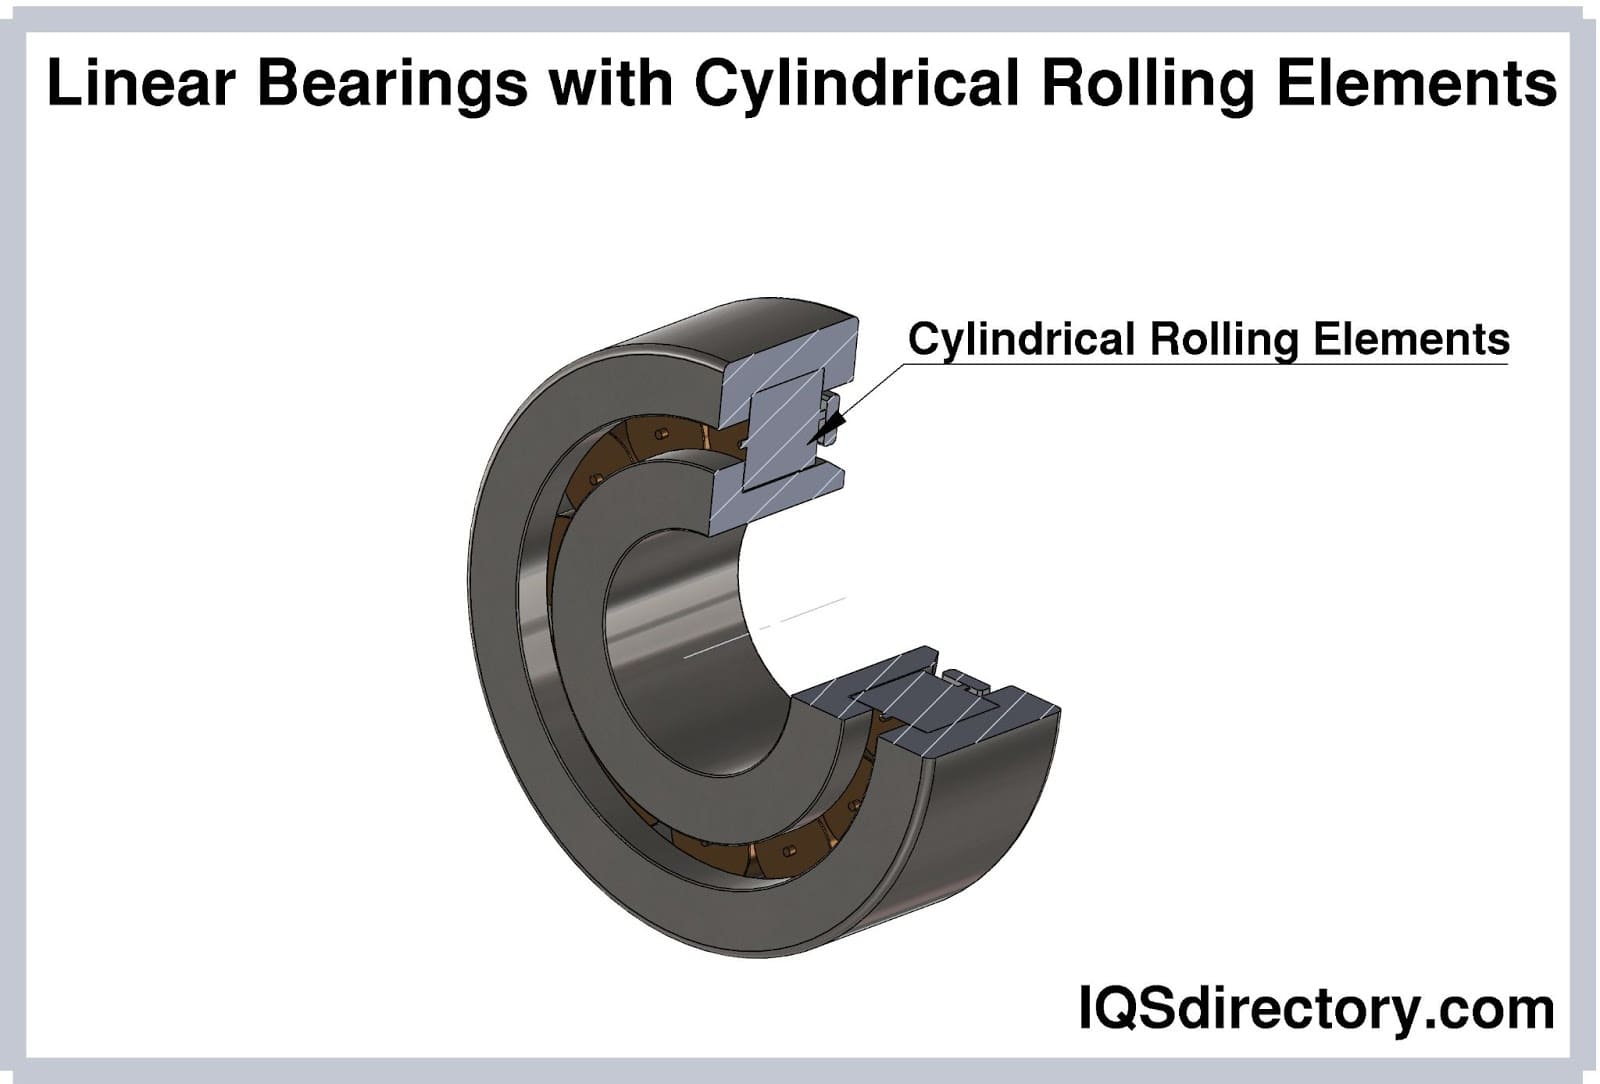 Linear Bearings with Cylindrical Rolling Elements